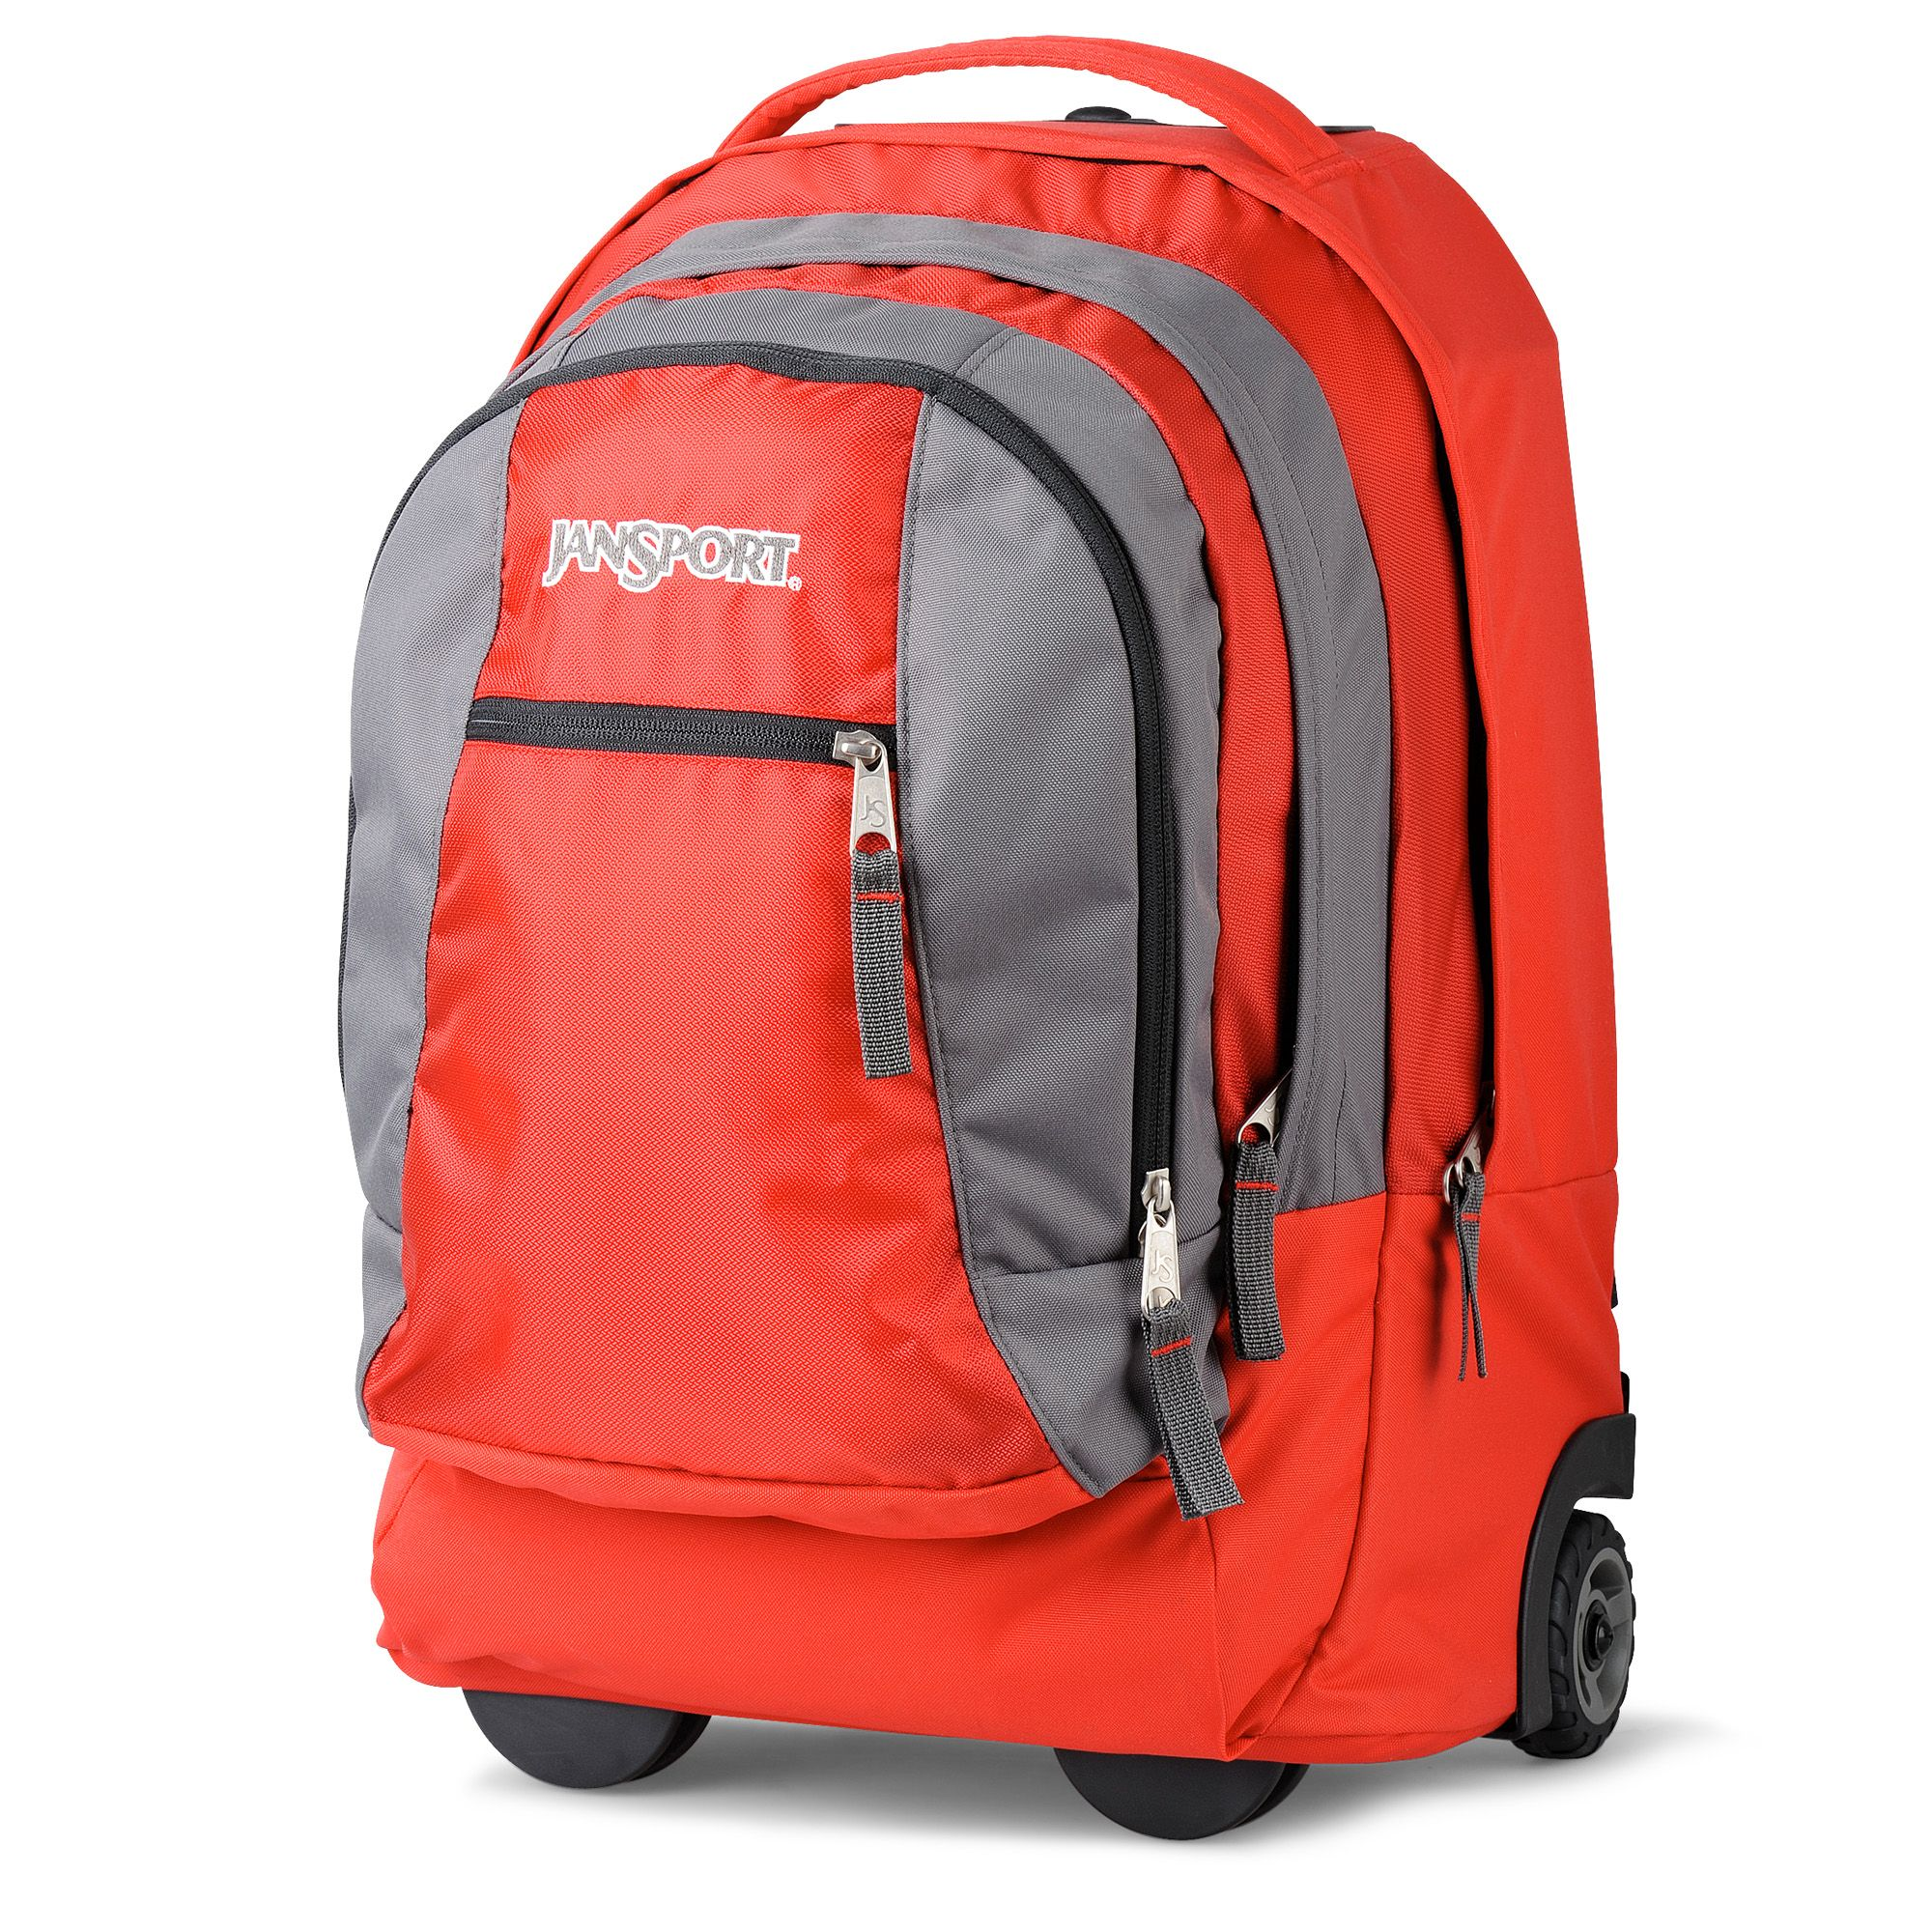 Rolling Backpacks On Sale Q6fuPtqv